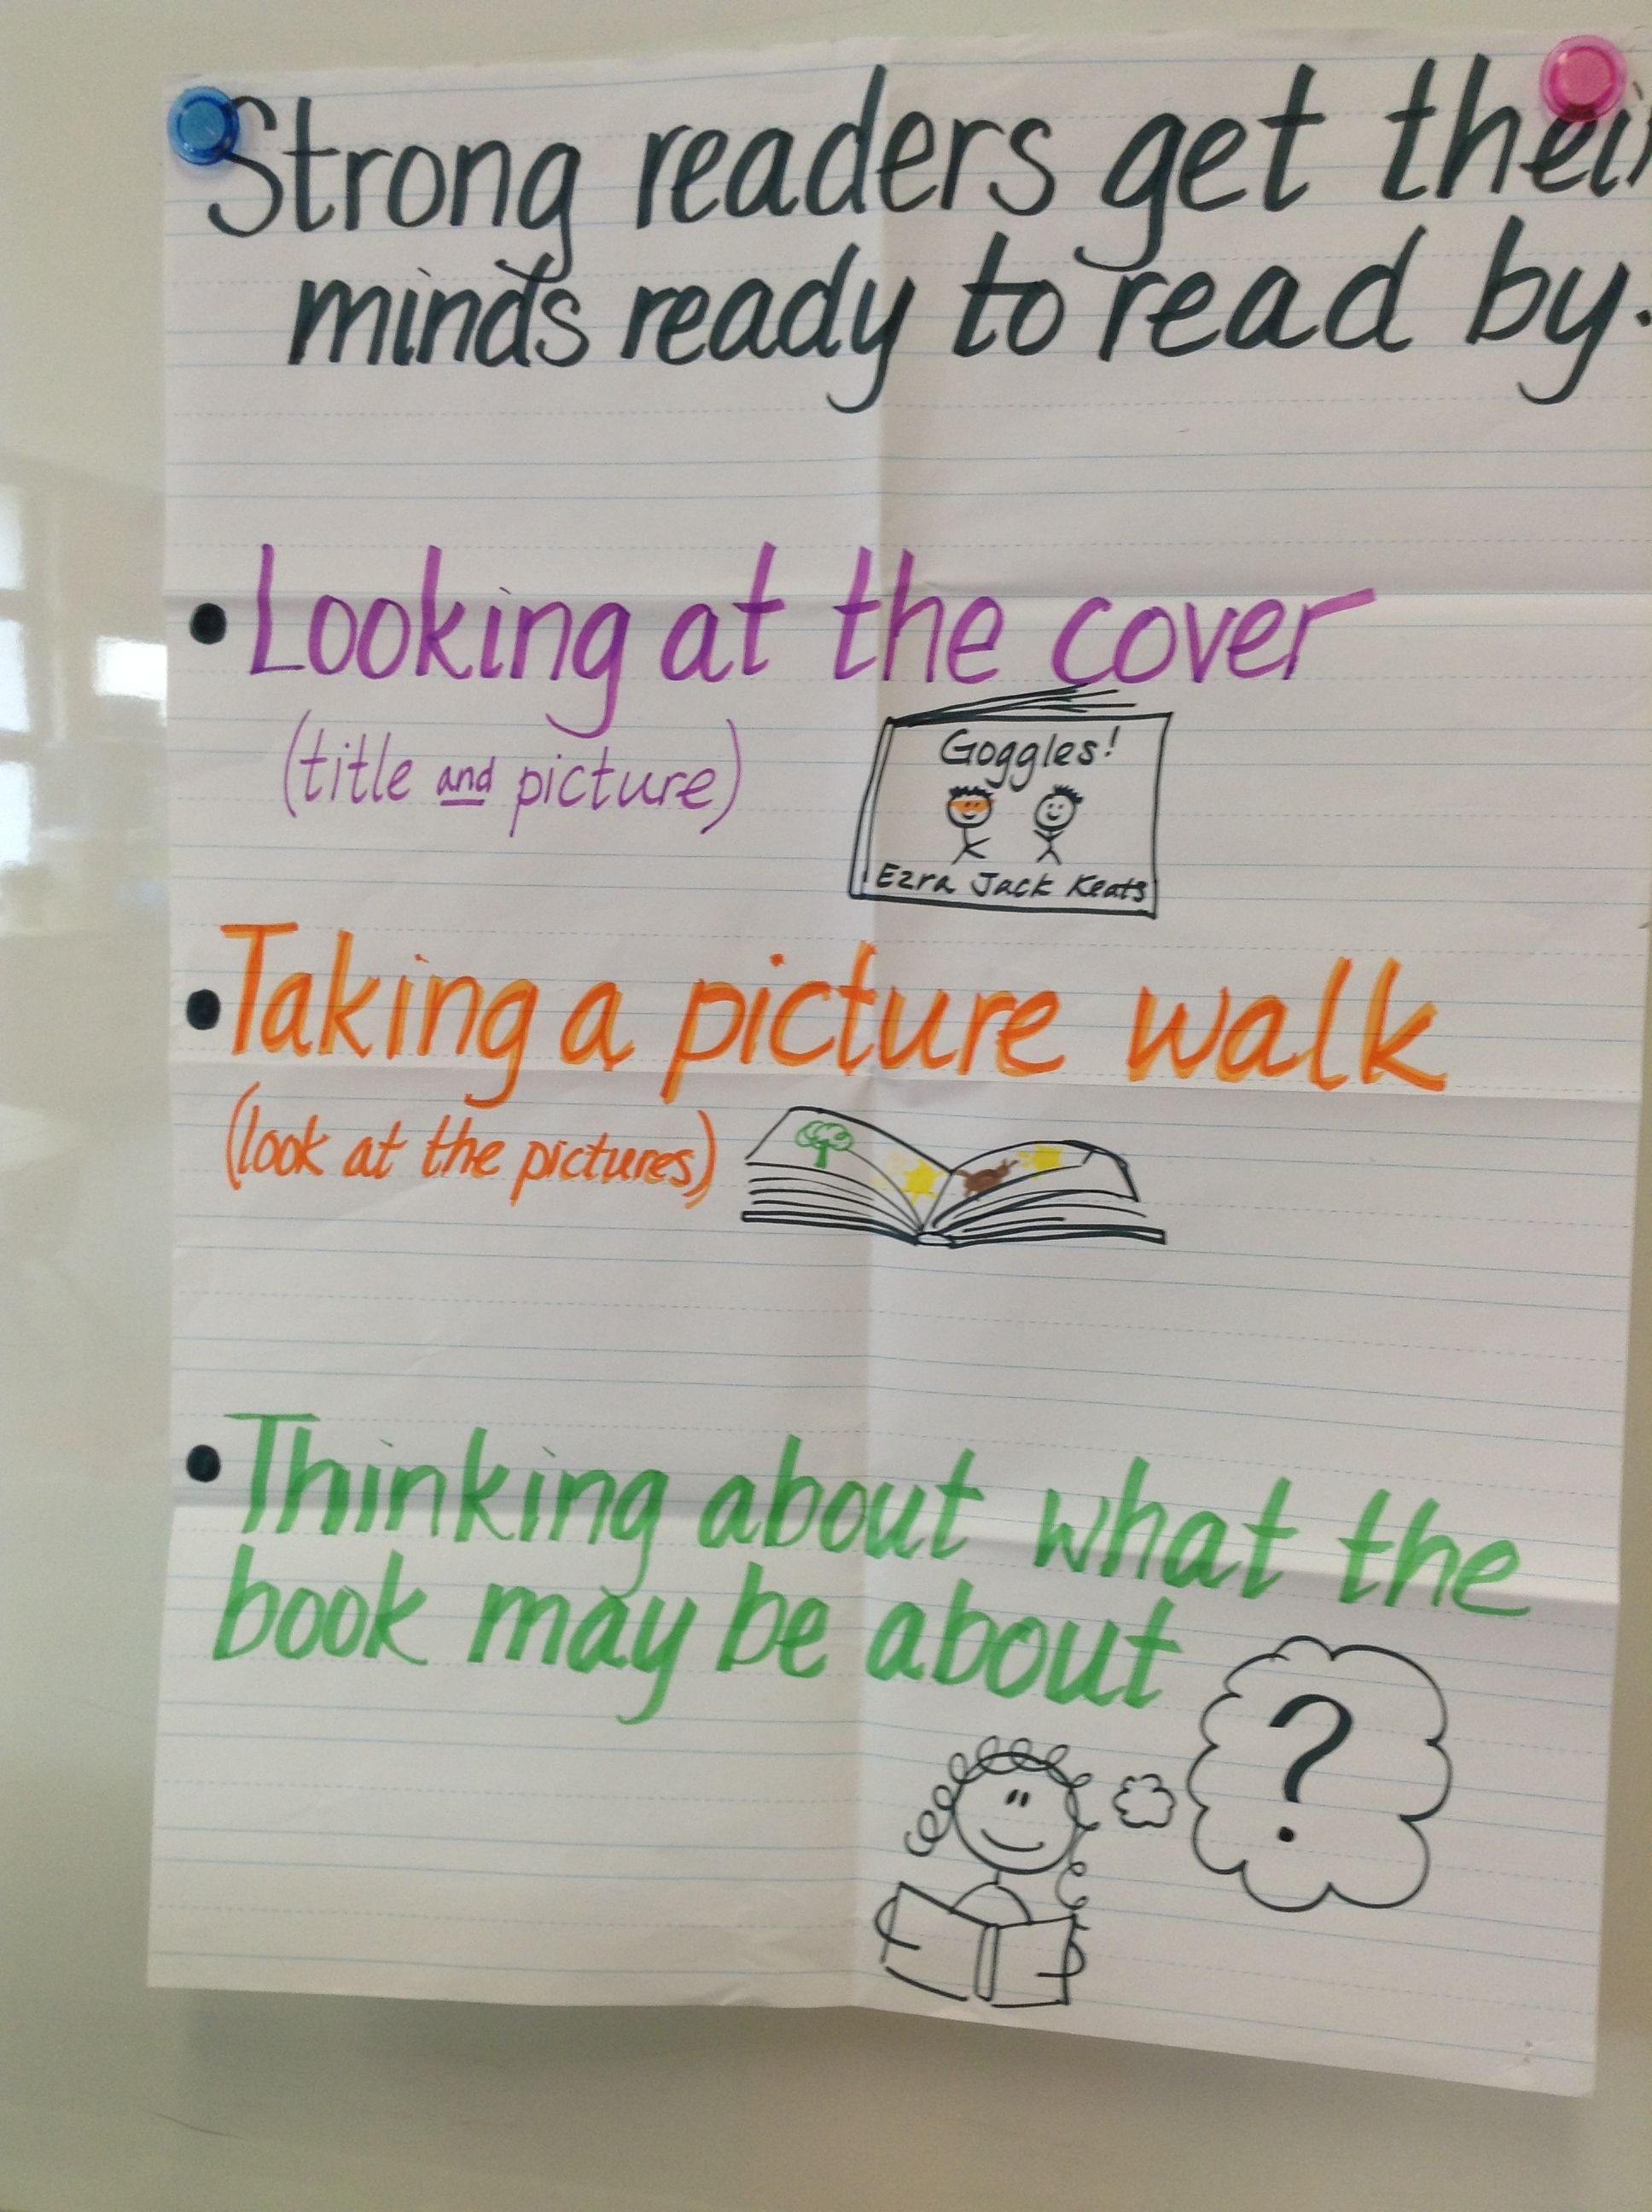 Getting Our Minds Ready To Read